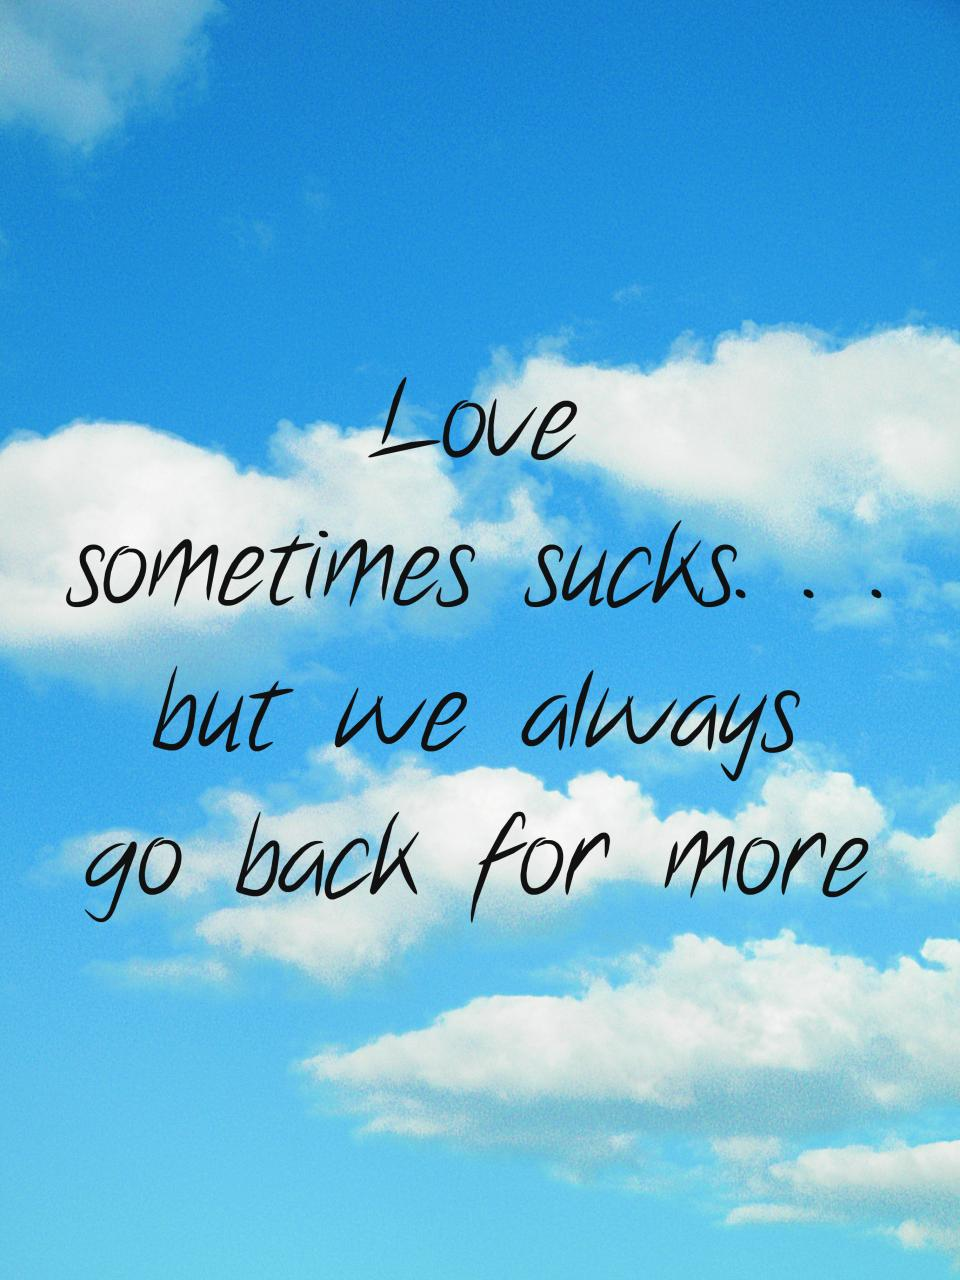 Love Sometimess But We Always Go Back For More